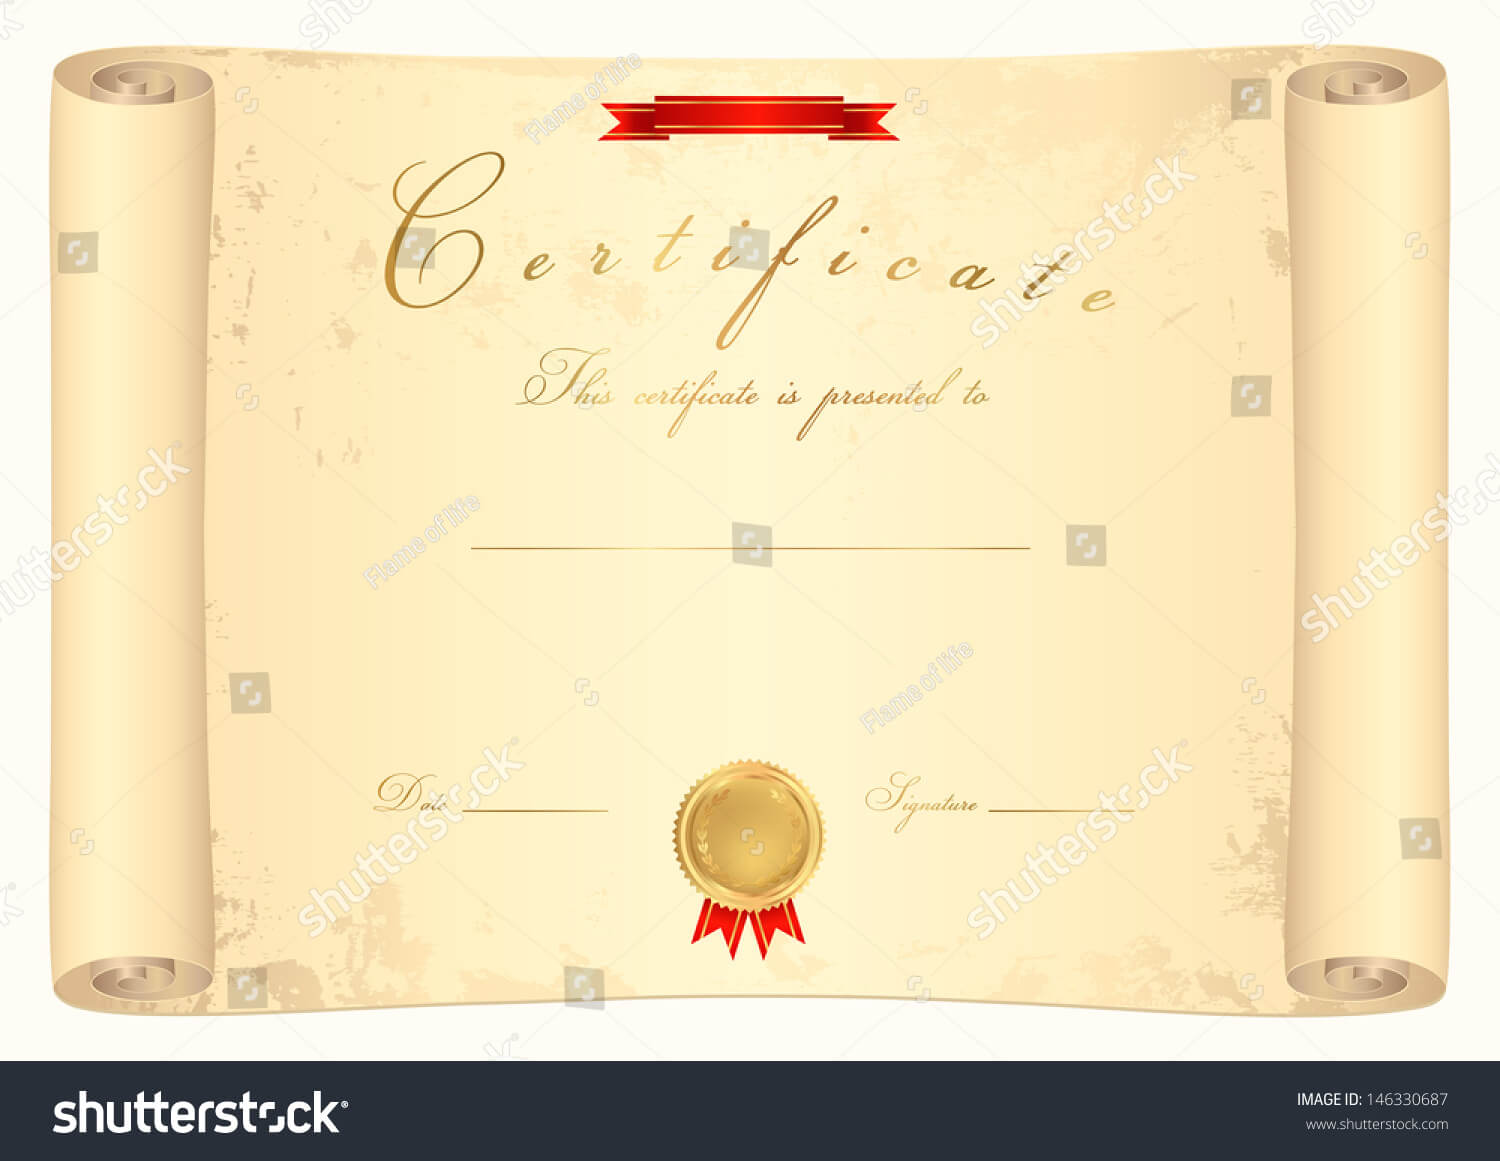 Scroll Certificate Completion Template Sample Background Inside Certificate Scroll Template